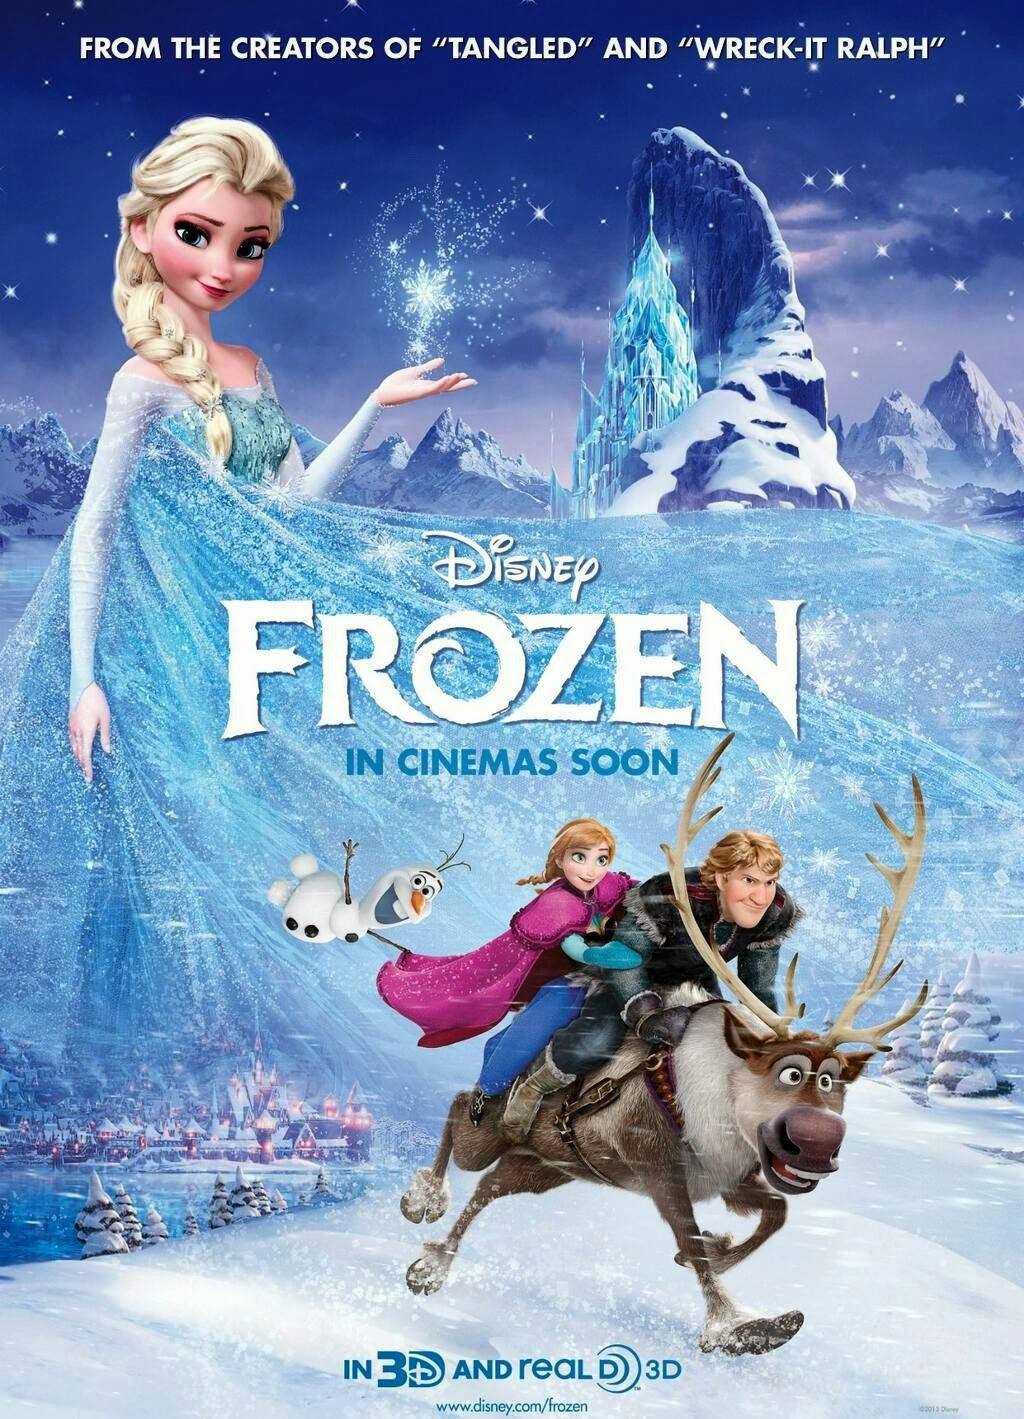 frozen full movie free download torrent movies download